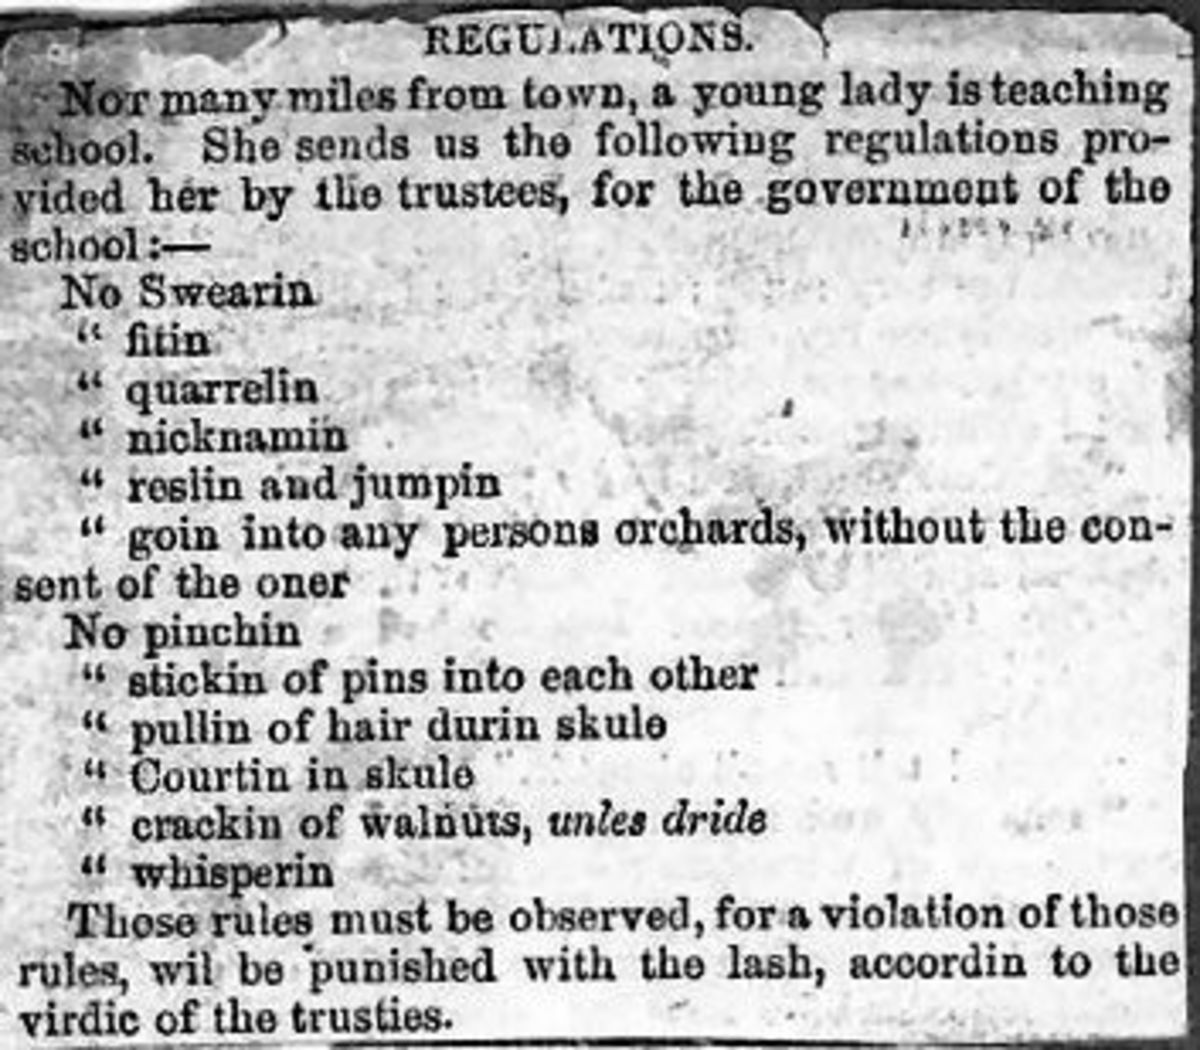 Early 19th century American School Regulations